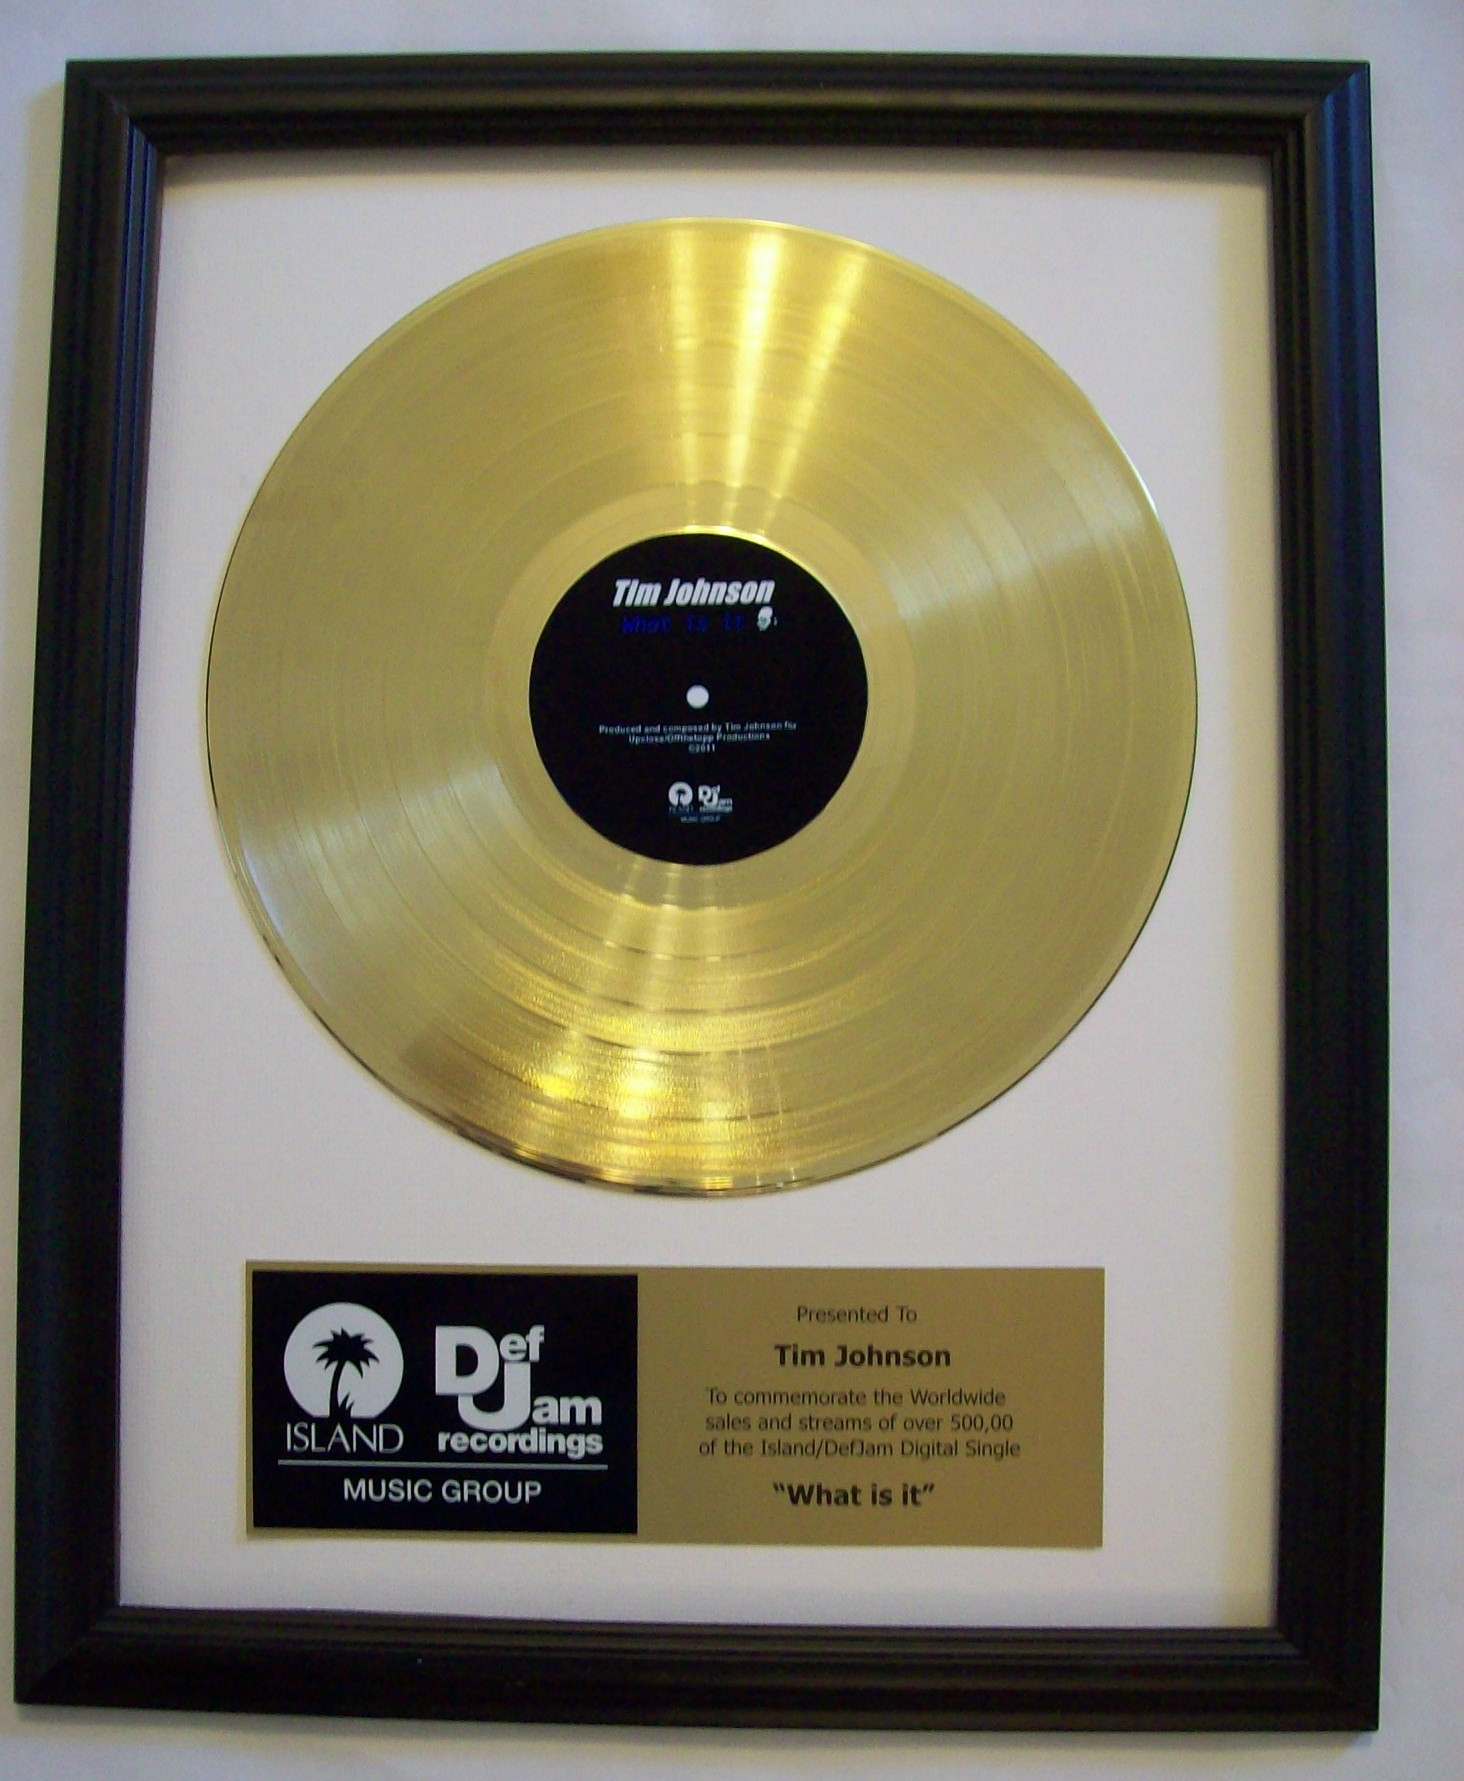 Image for Gold LP Record Trophy/Award